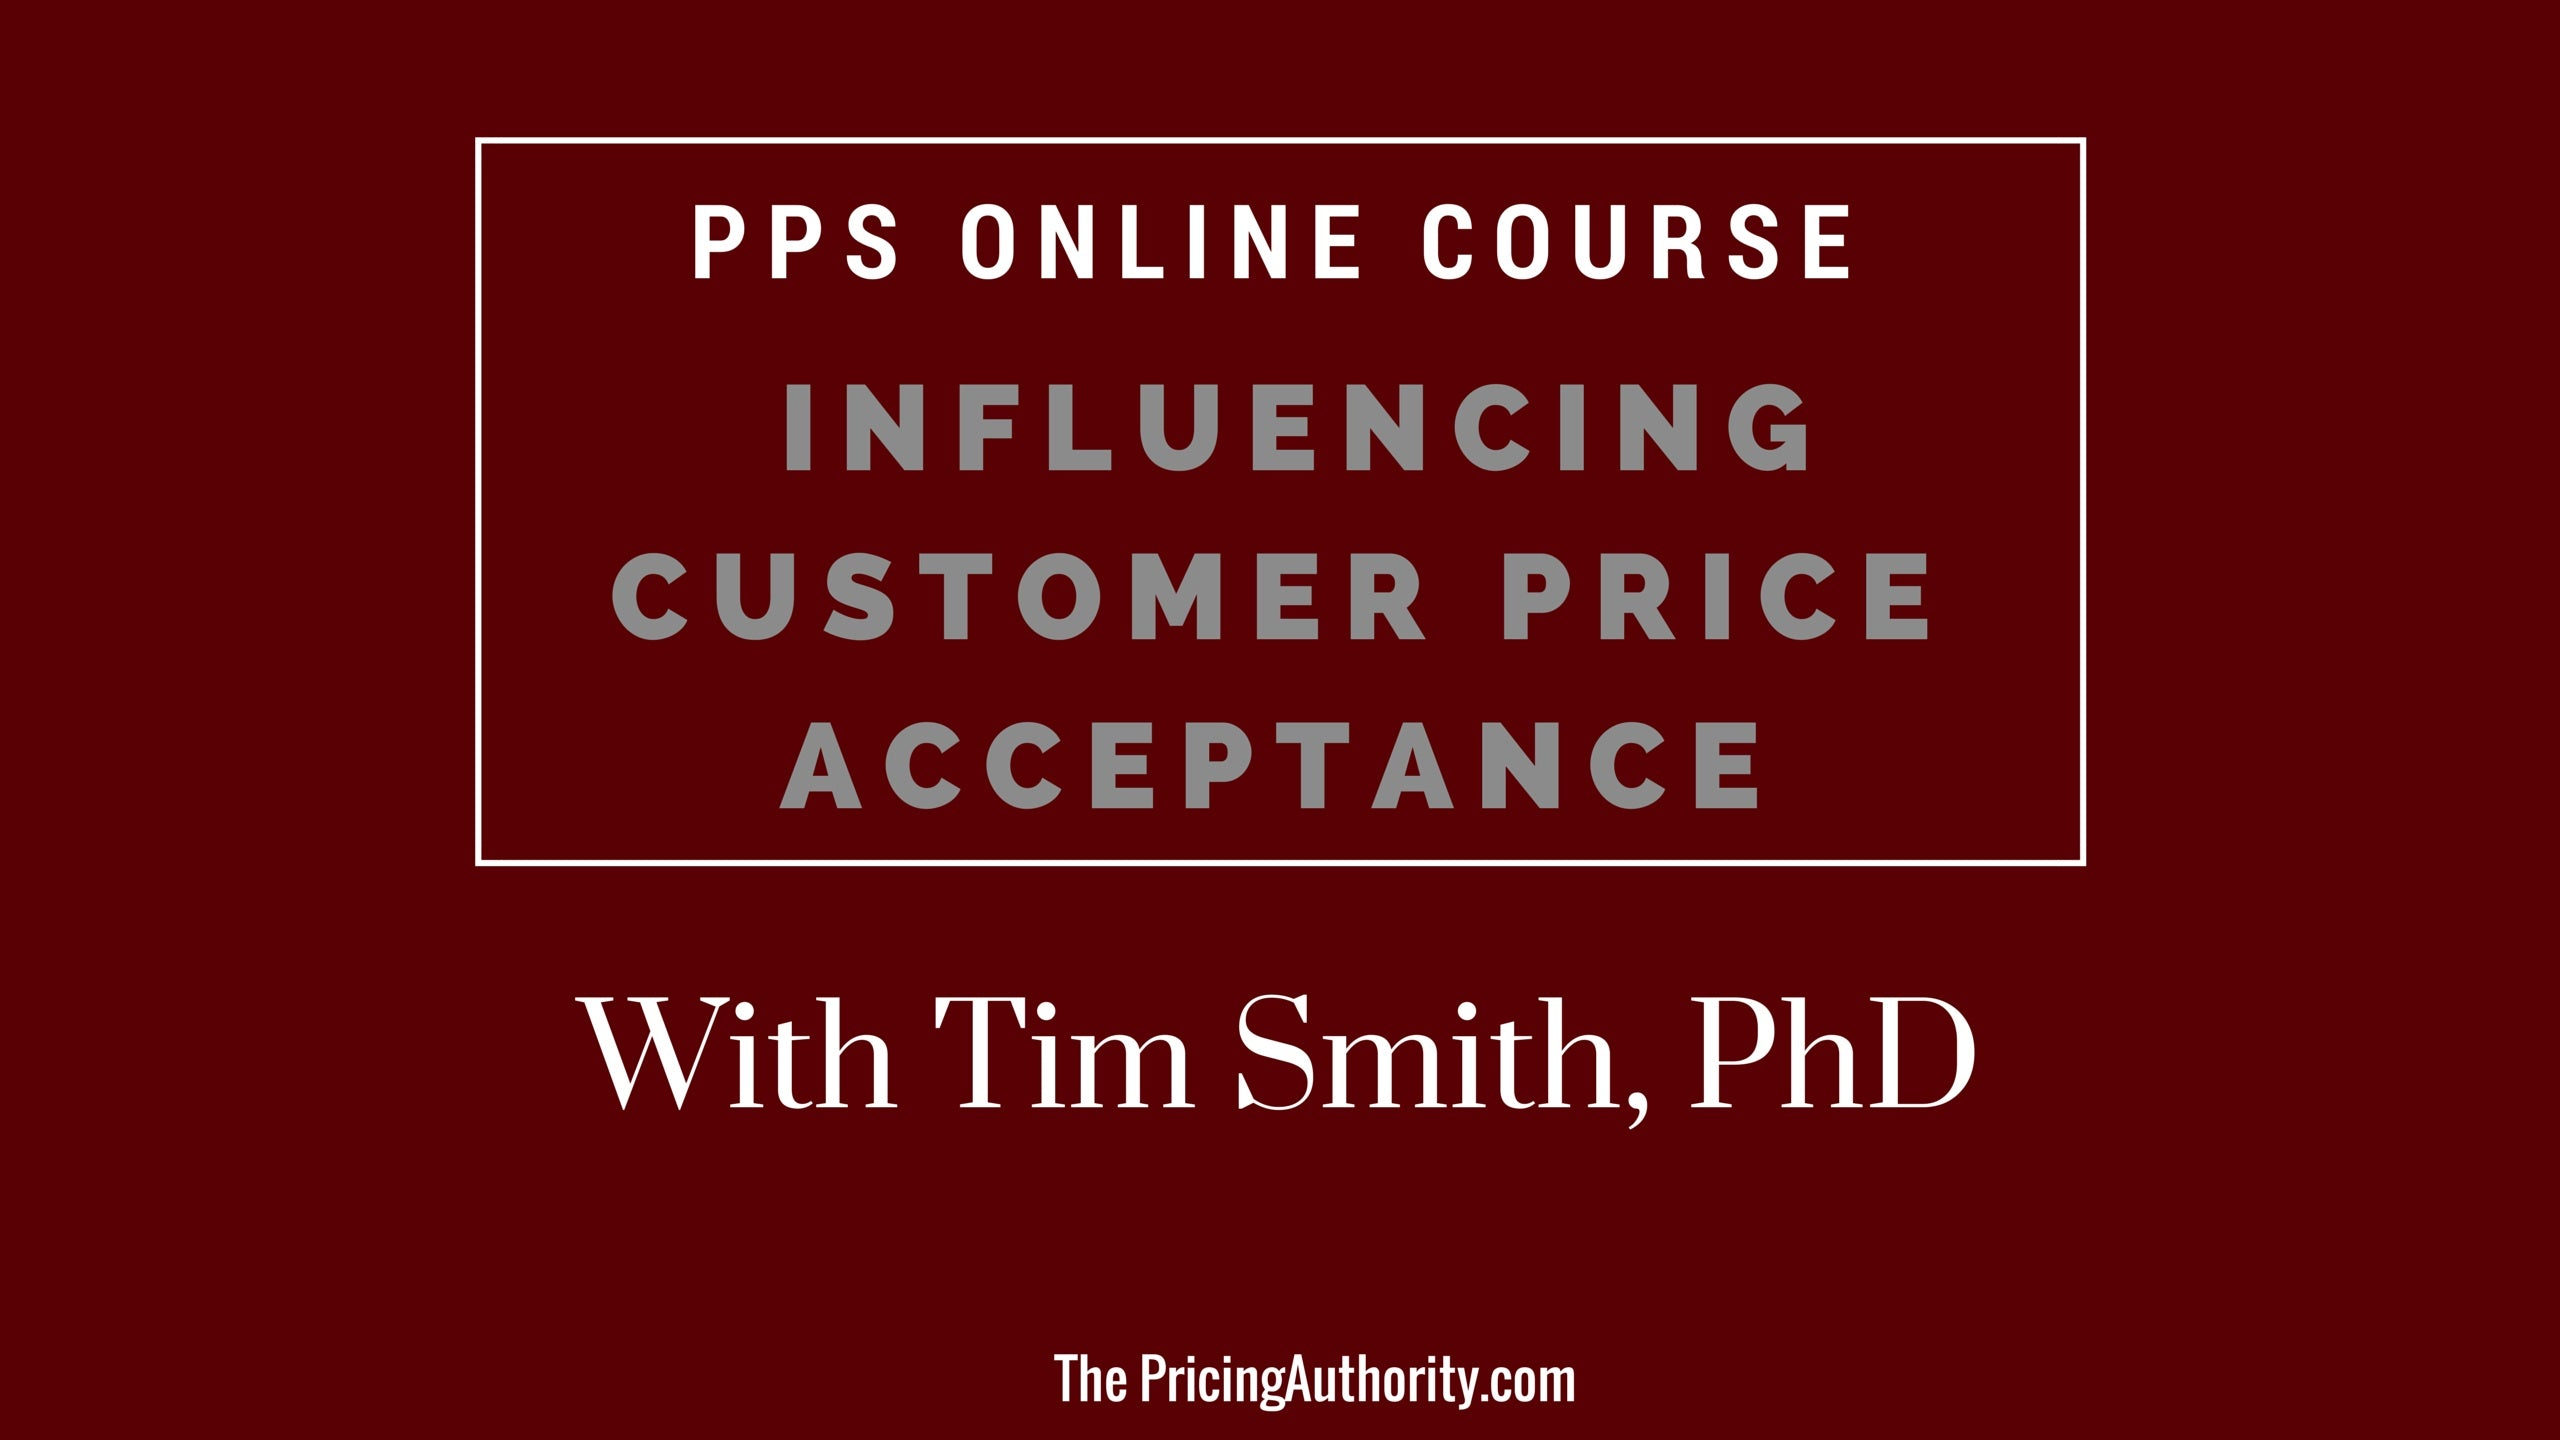 PPS online course - Tim Smith